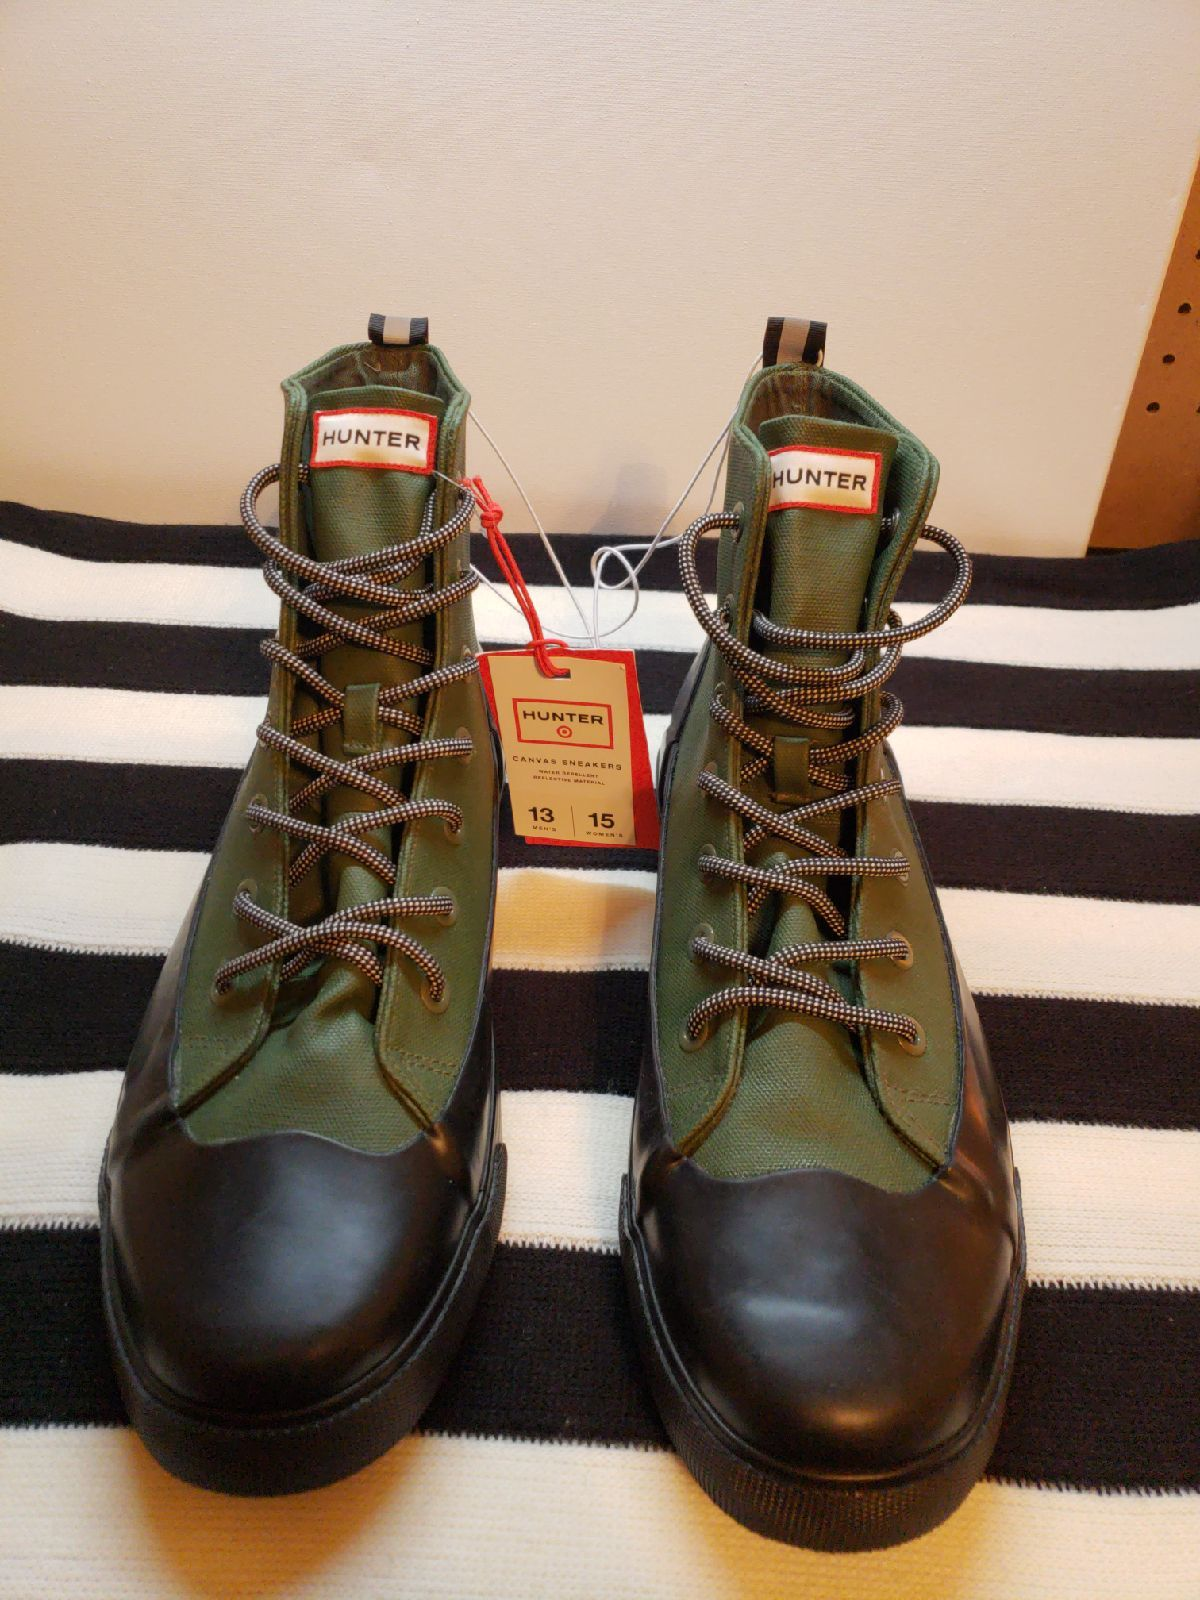 Hunter Target Sneakers Boots New 13 15